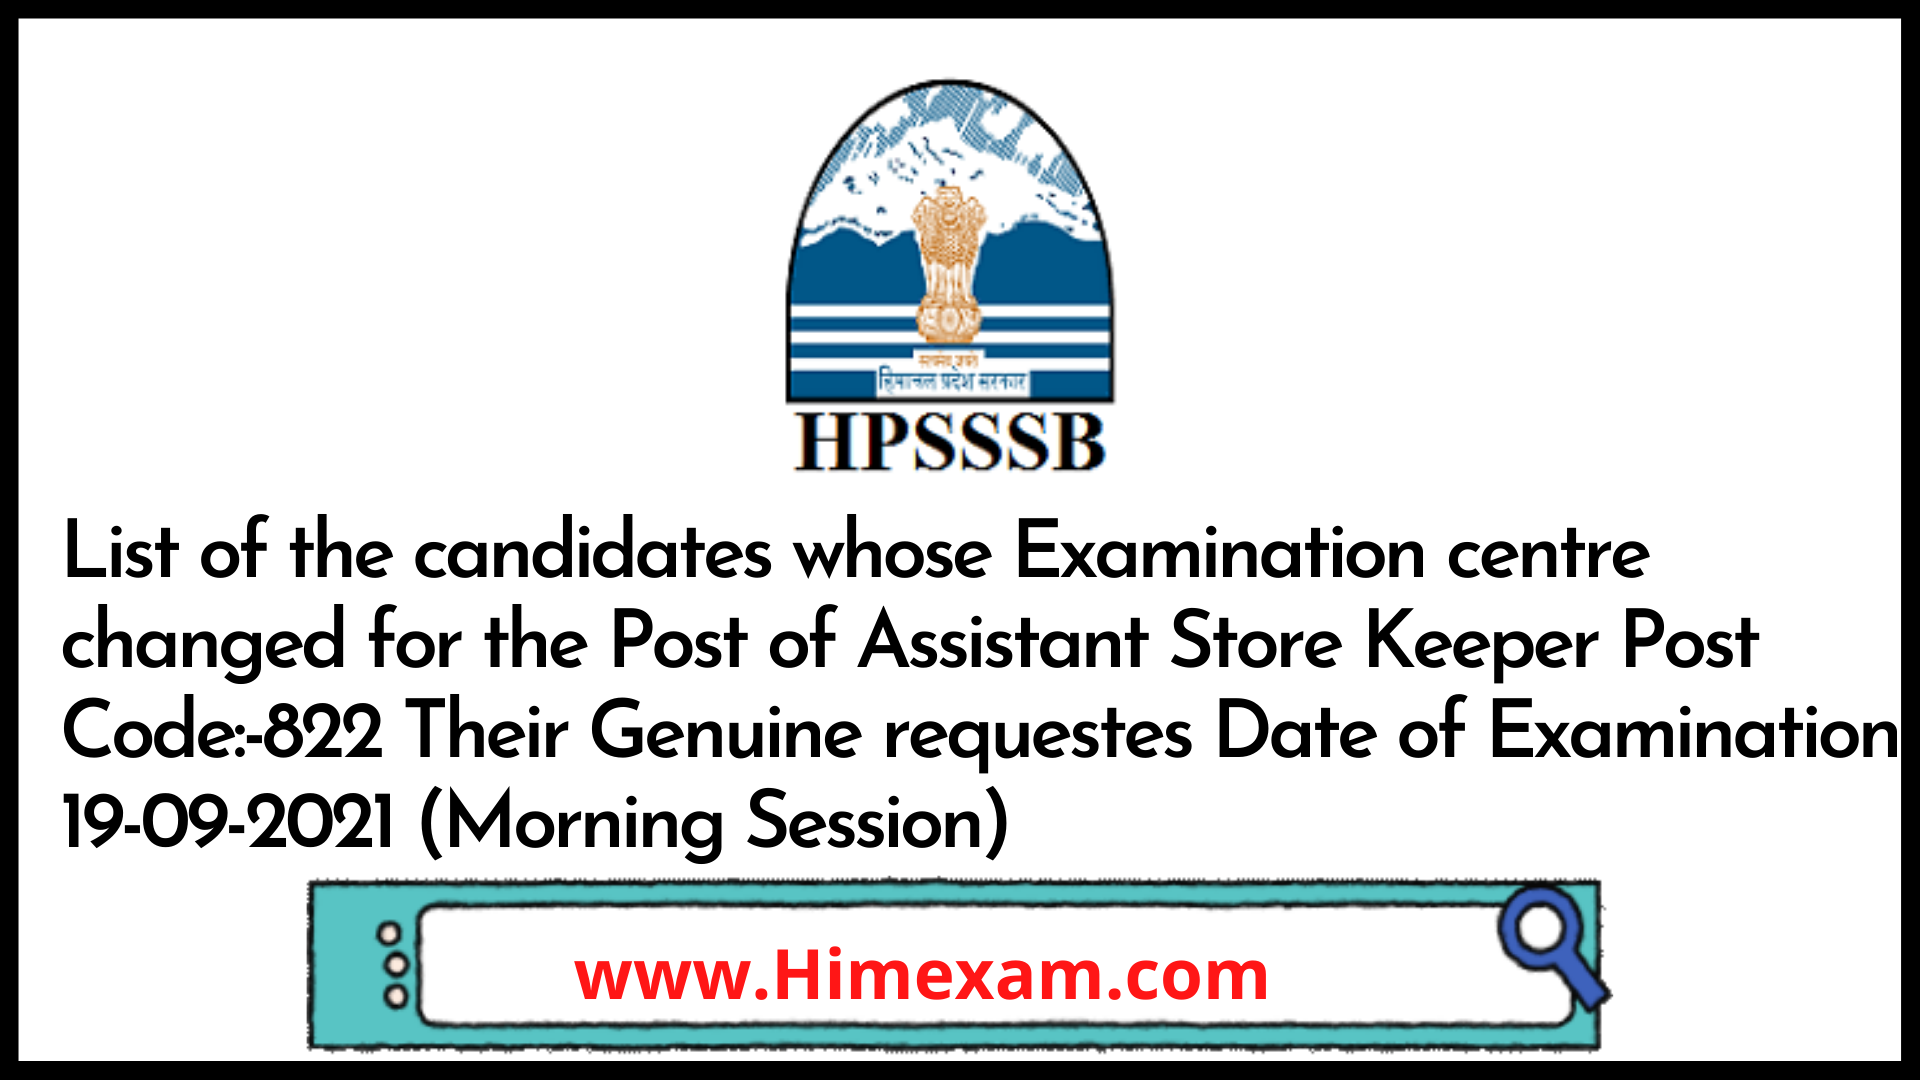 List of the candidates whose Examination centre changed for the Post of Assistant Store Keeper Post Code:-822 Their Genuine requestes Date of Examination 19-09-2021 (Morning Session)